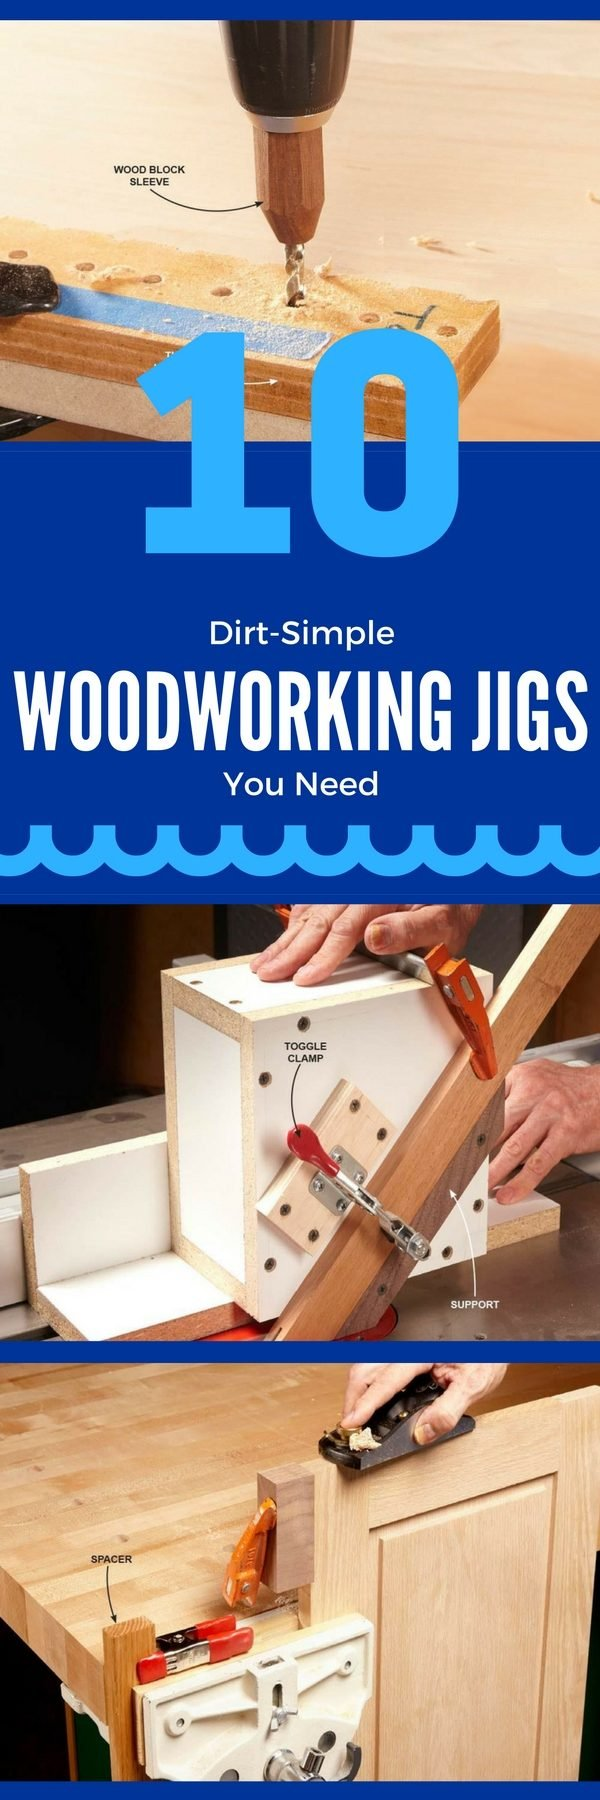 Amazing Do You Want To Start With Woodworking Then Here Is The